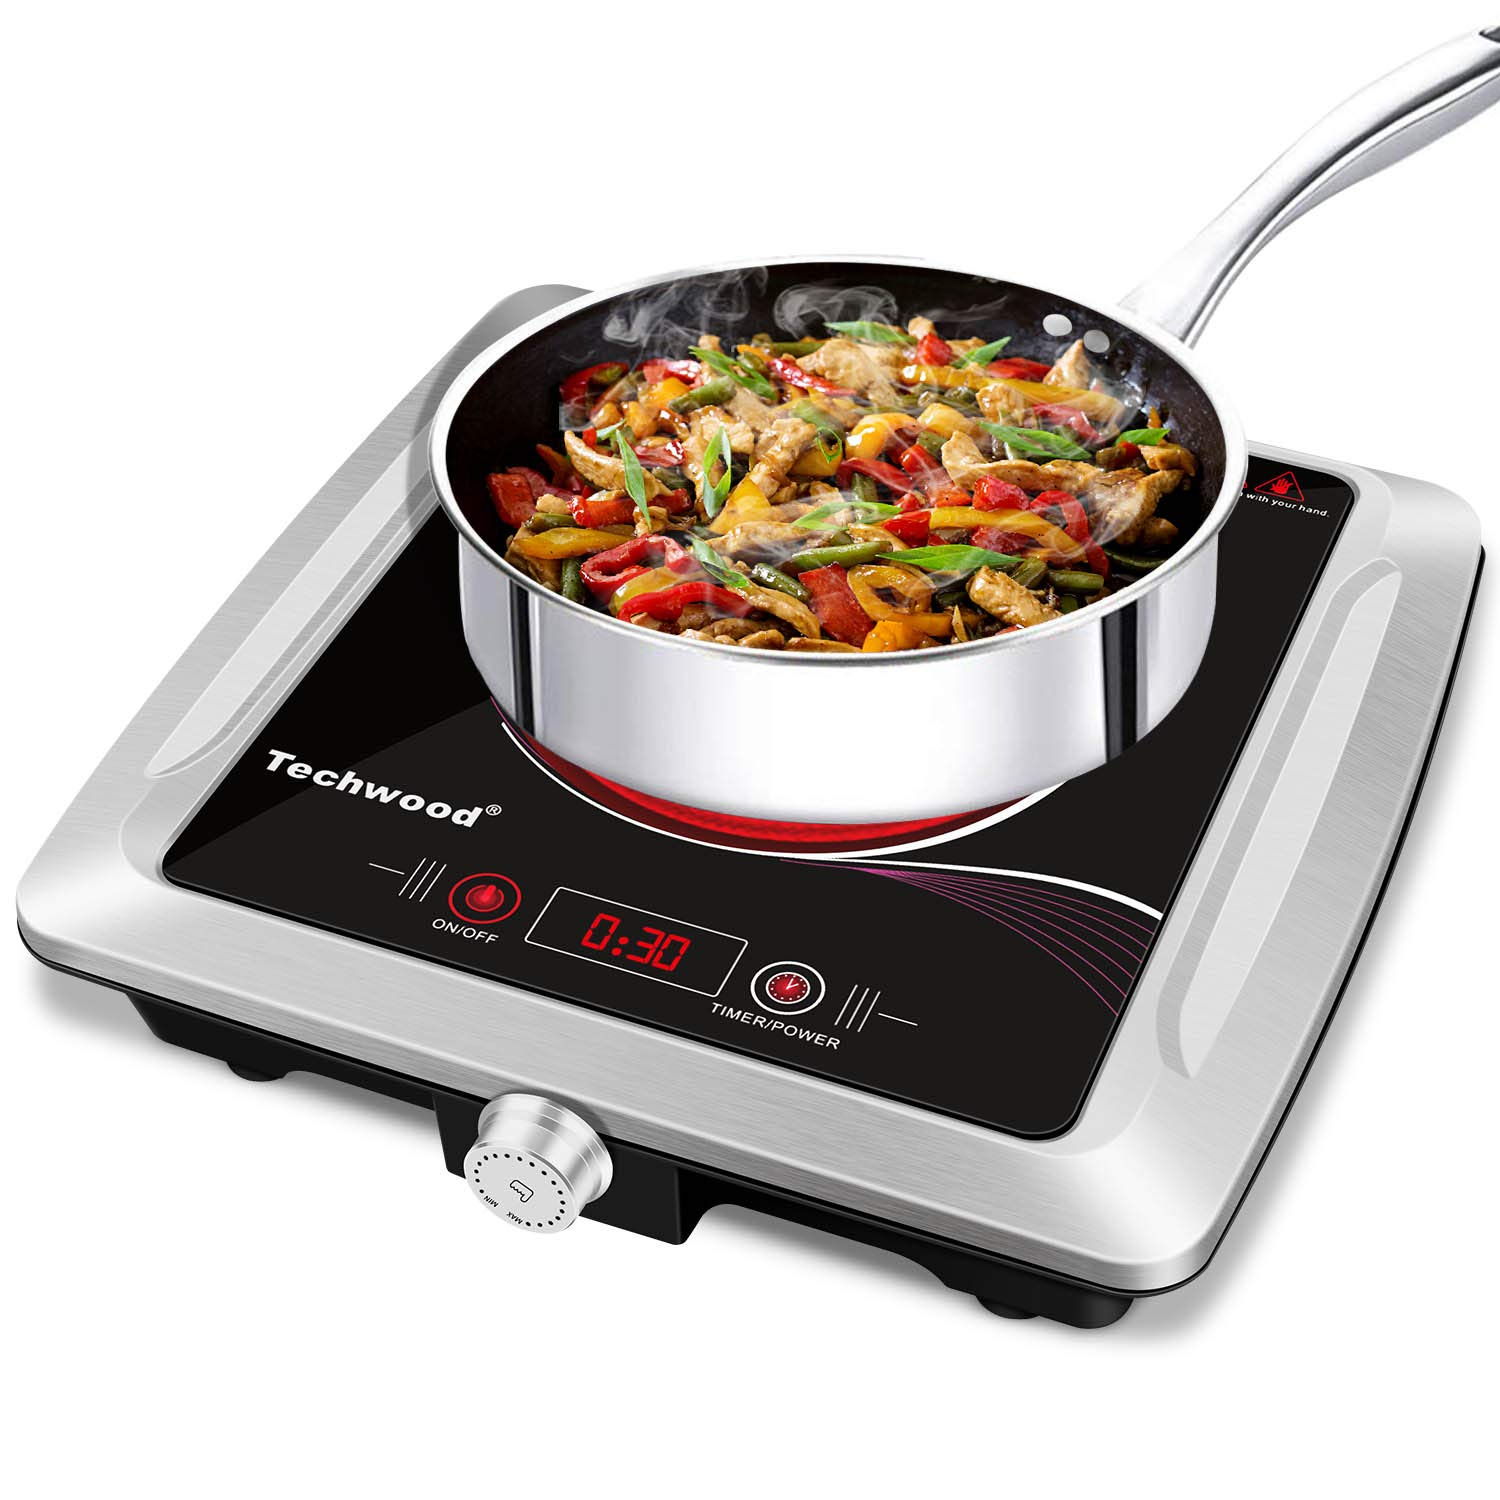 Techwood Hot Plate Electric Stove Single Burner Countertop Infrared Cooktop, 1500W Timer and Touch Control, Portable Compatible All Cookware, Ceramic Glass & Stainless Steel Easy to Clean